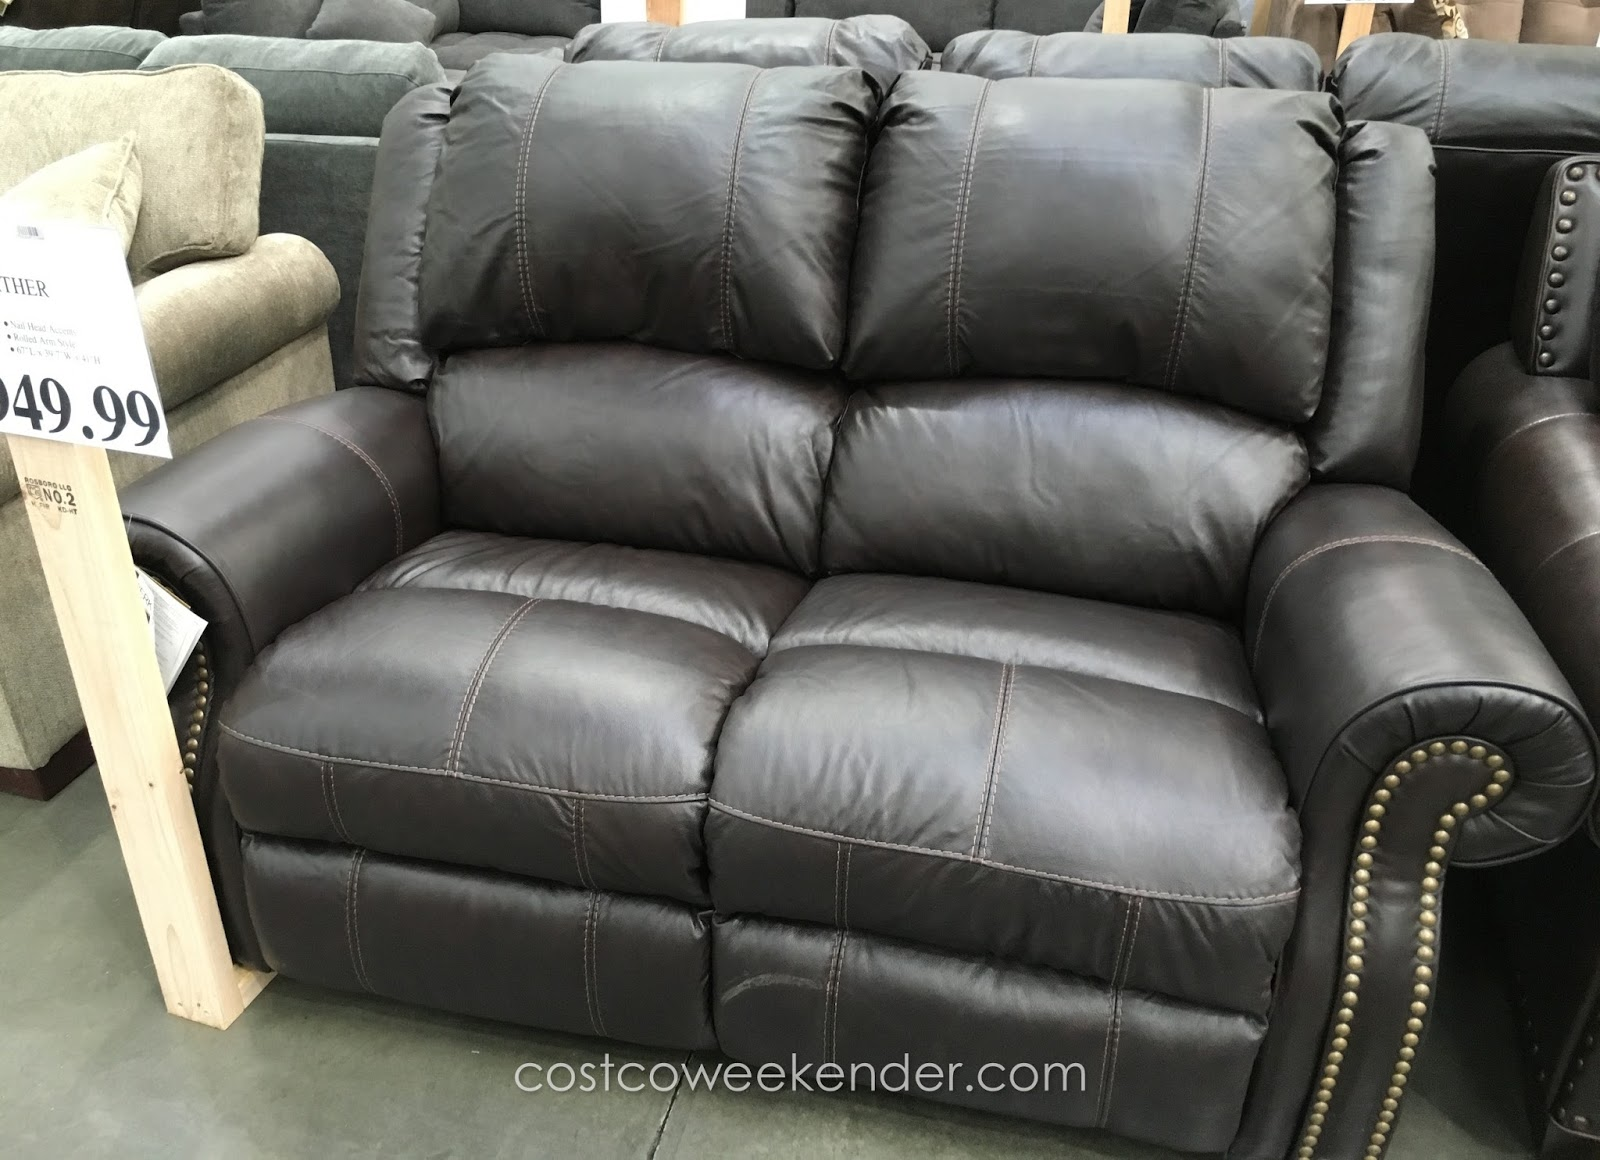 Costco Recliner Chair Berkline Leather Sofa Berkline Andlynn Sofa Set Thesofa